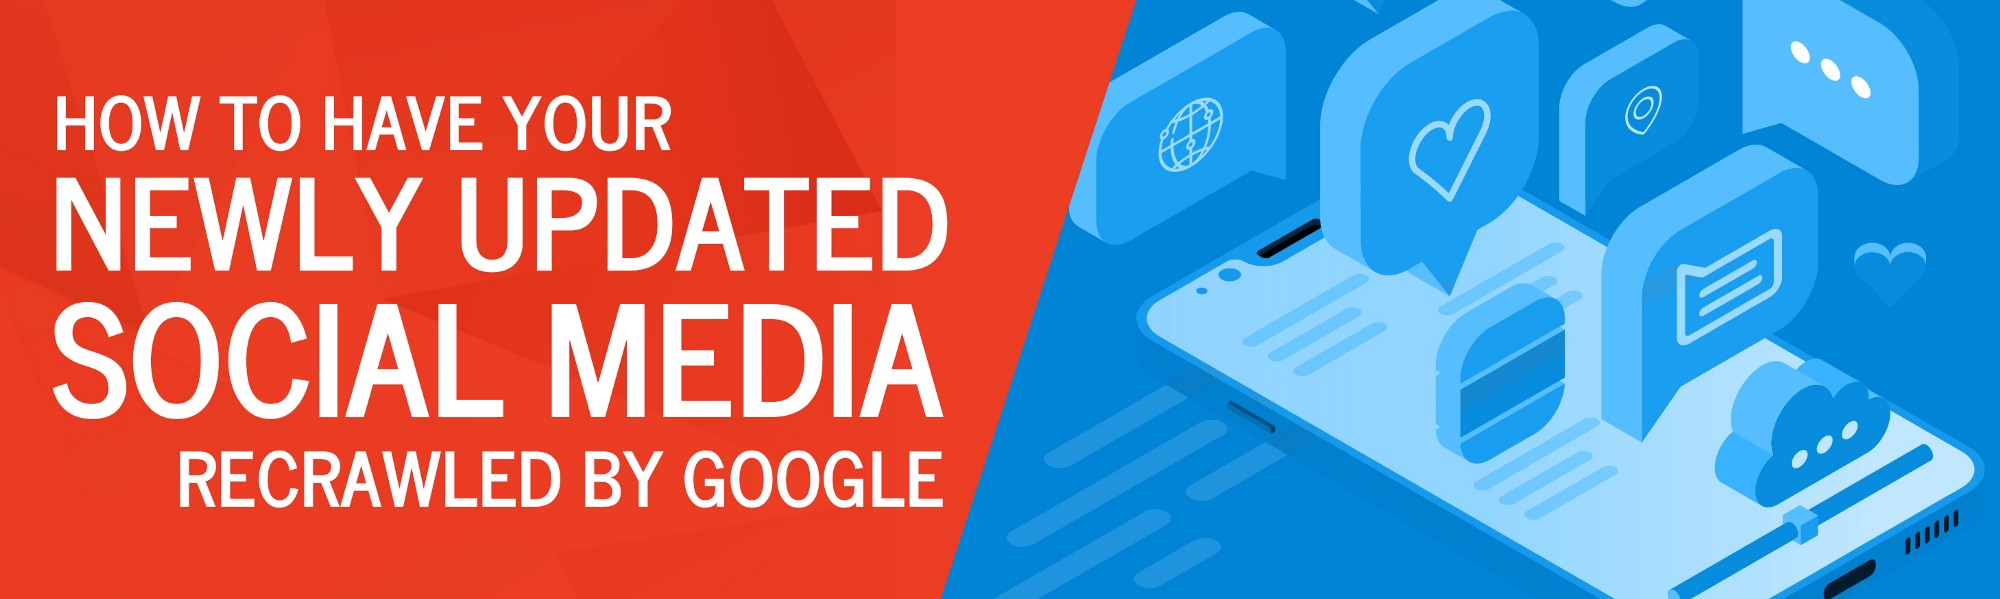 How to Have Your Newly Updated Social Media Pages Recrawled by Google